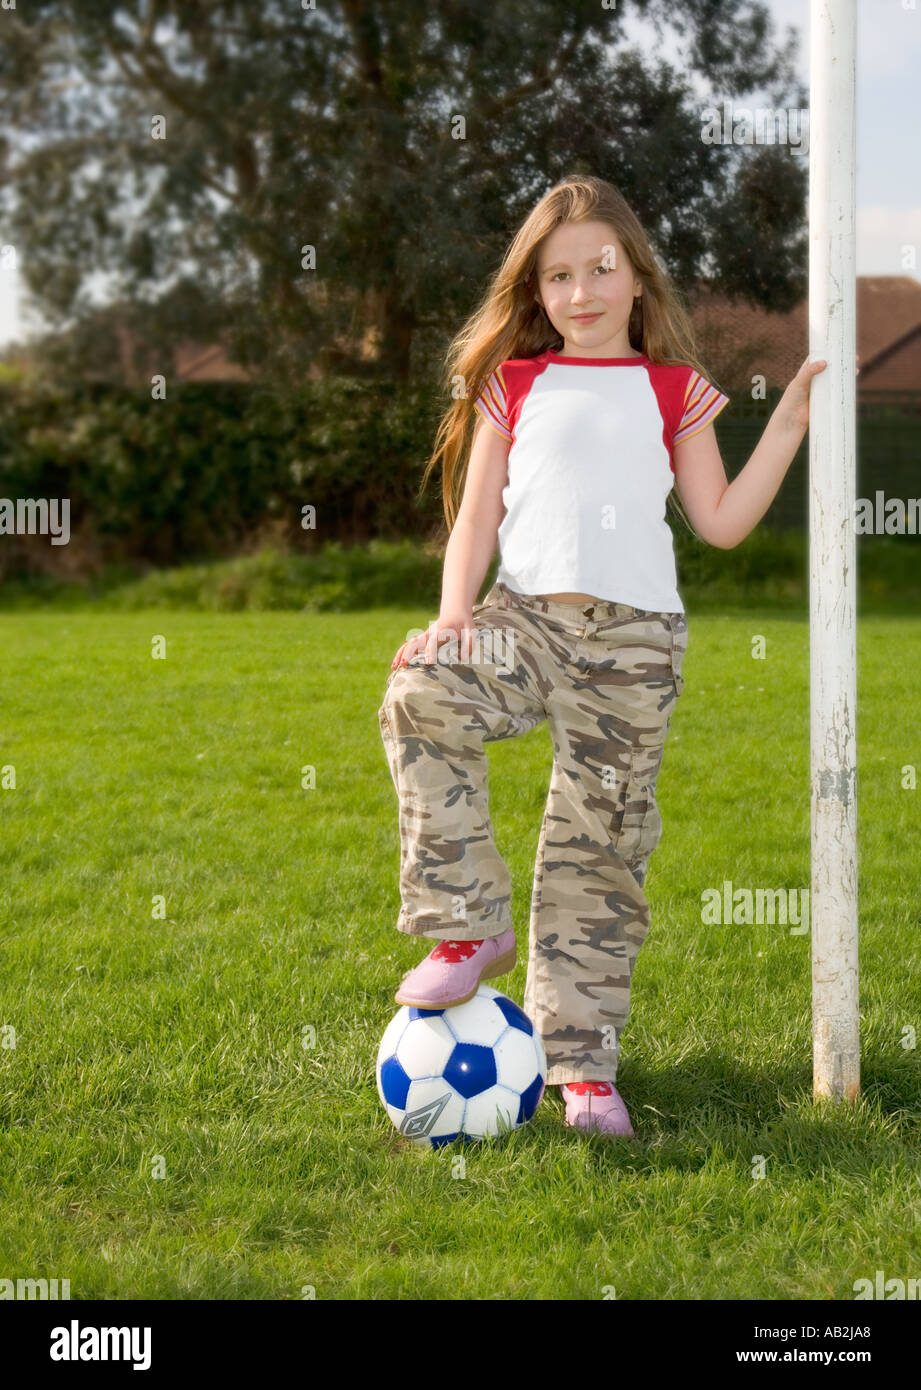 Girl 8 to 10 years old standing with soccer ball next to goal post ...